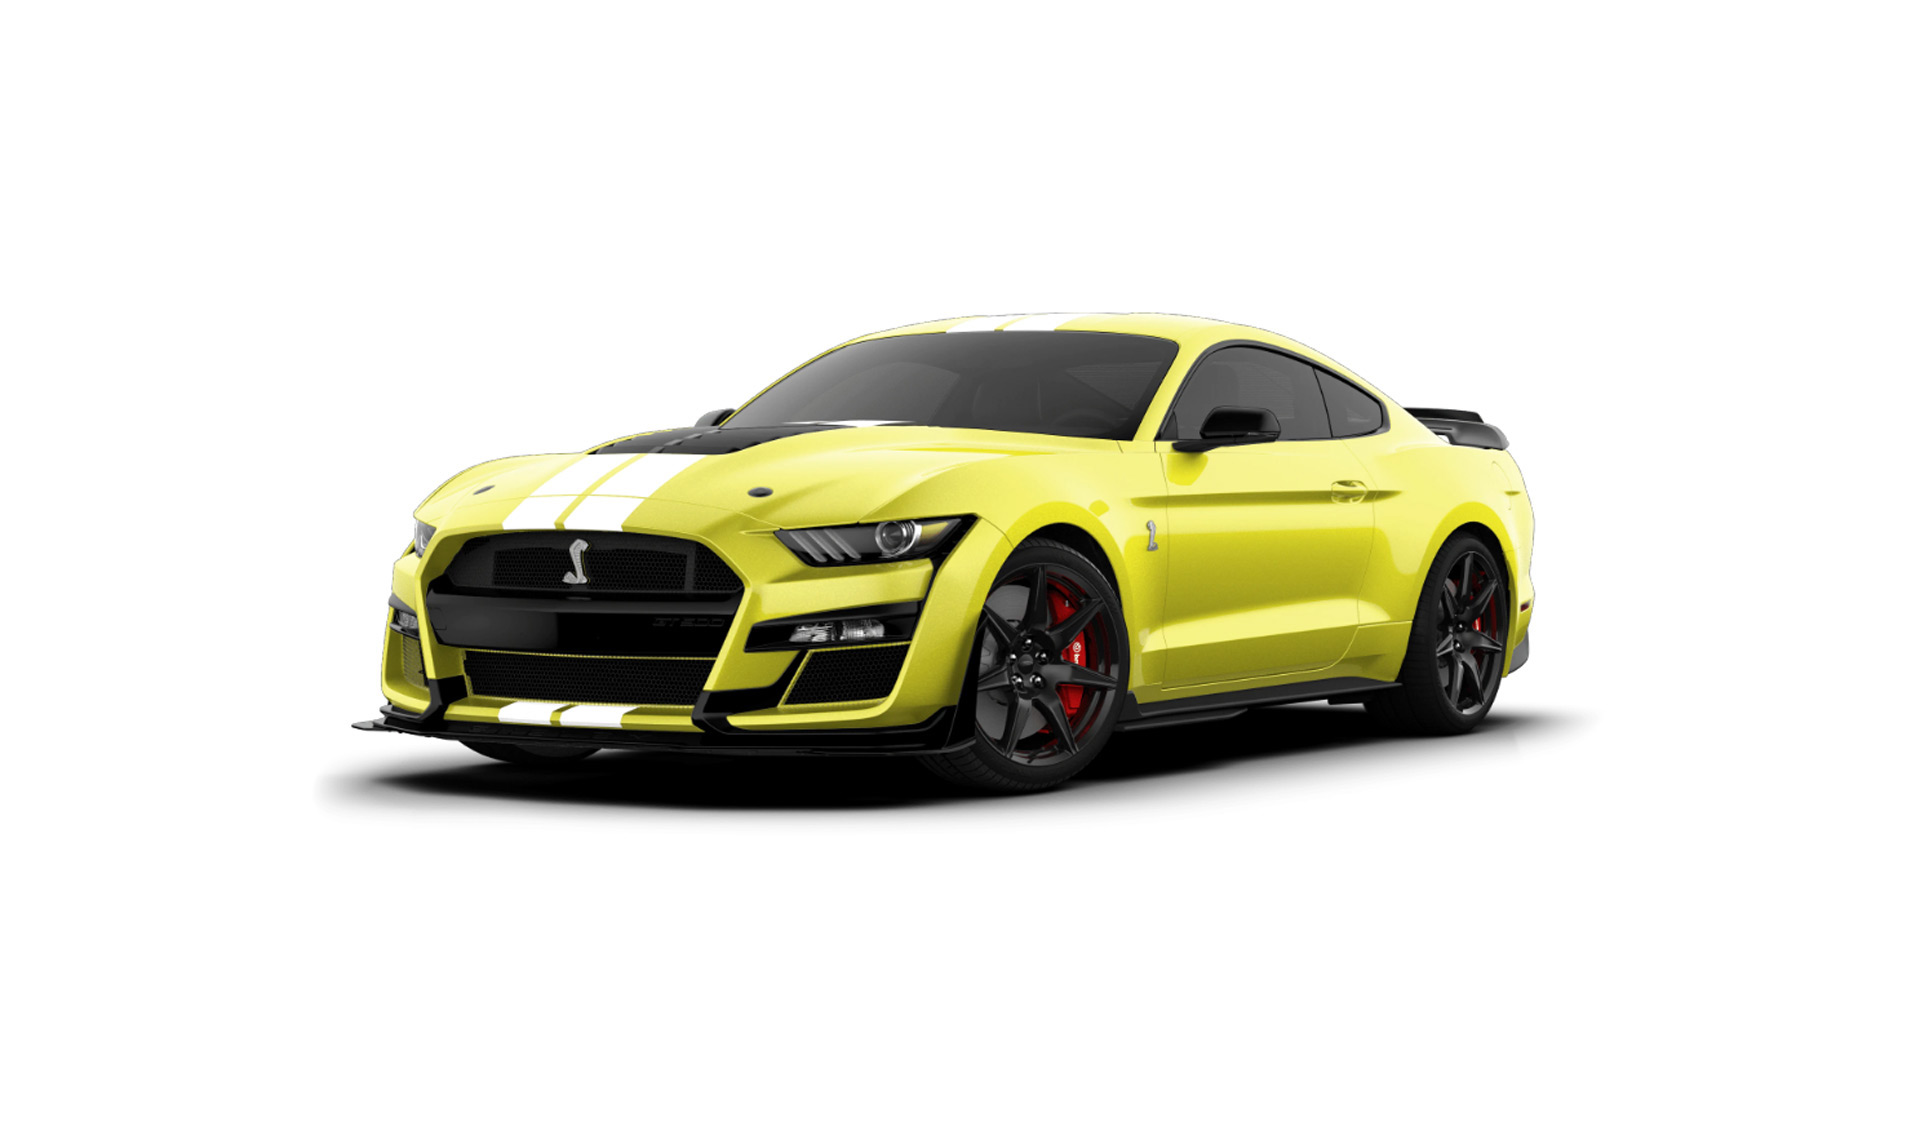 Preview: 2021 Ford Mustang Shelby GT500 offered with carbon pack, new colors